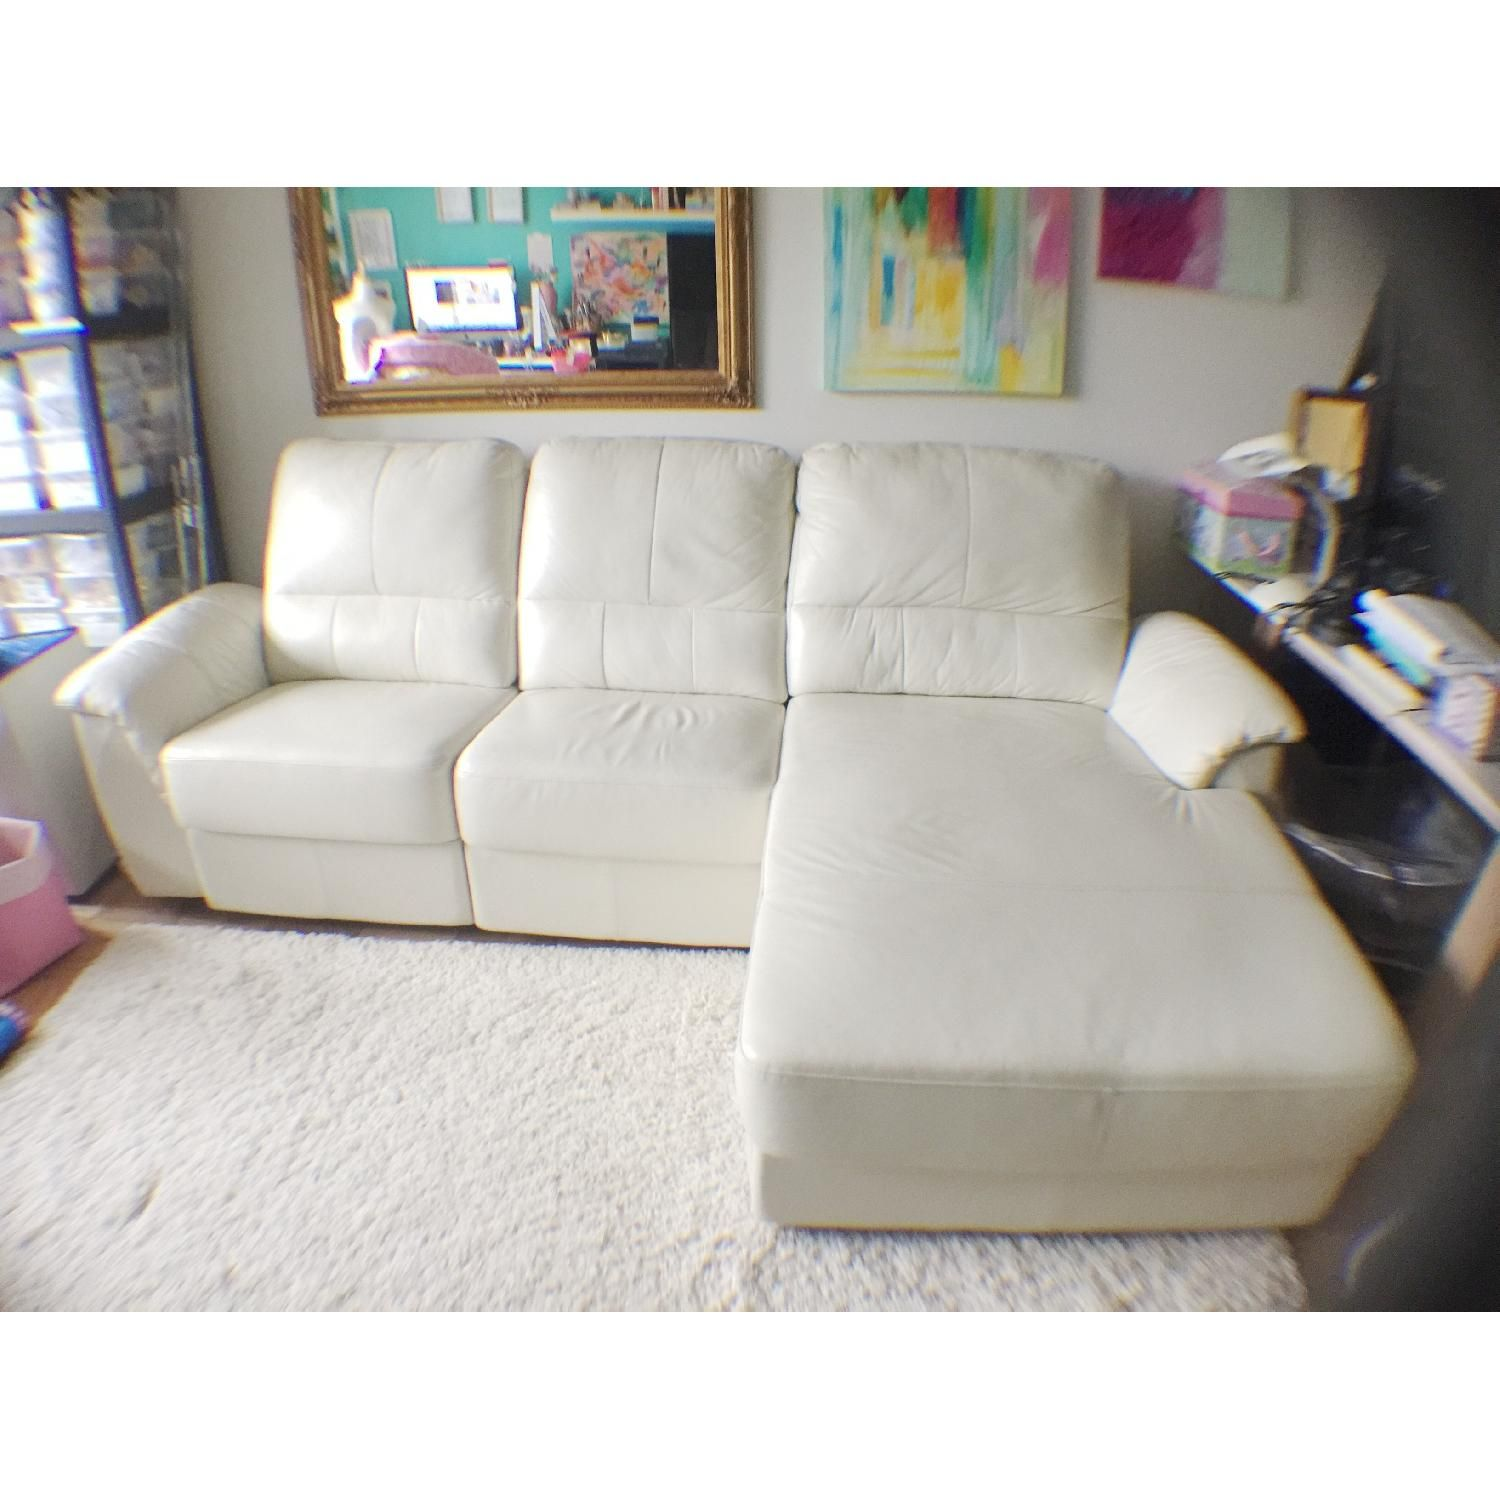 Cellini Ivory White Leather Sectional Sleeper Sofa